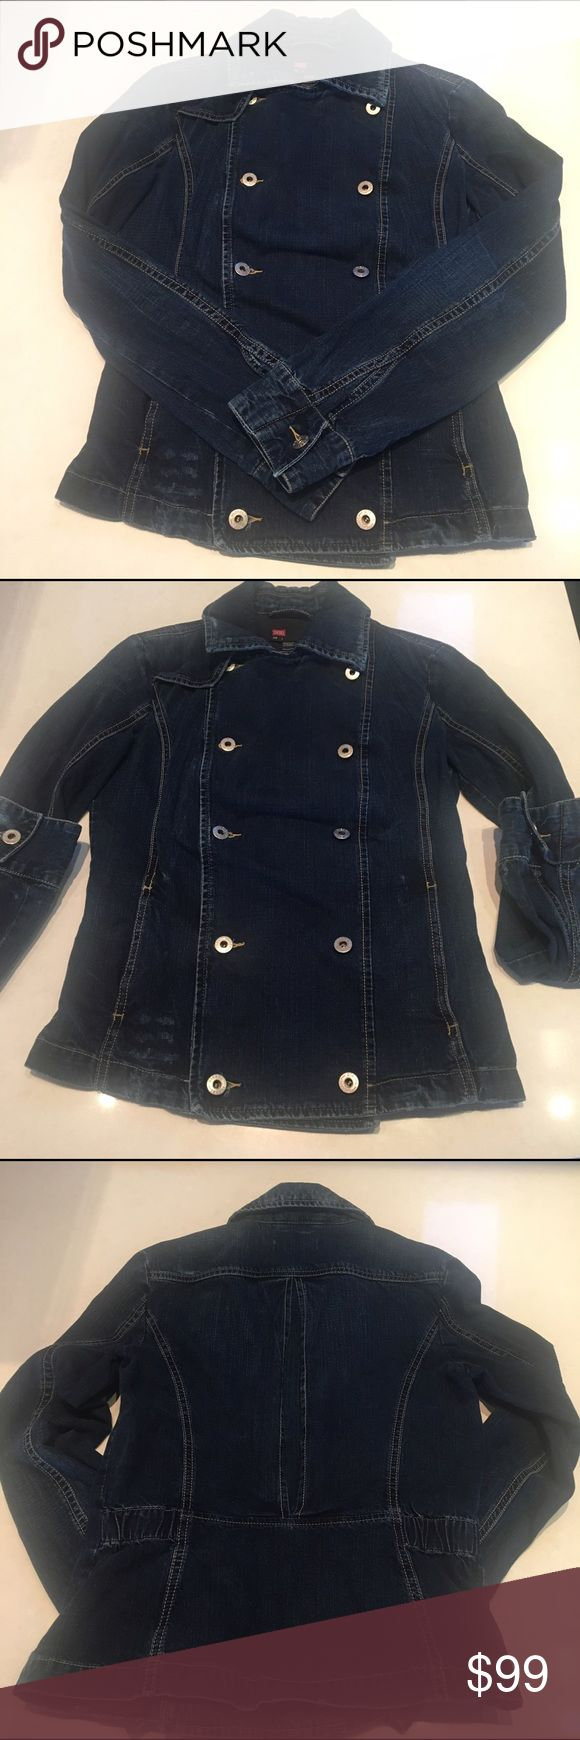 Diesel Double Breasted Military Jean Jacket Small Super cute Diesel jacket with amazing cut and style. Diesel Jackets & Coats Jean Jackets